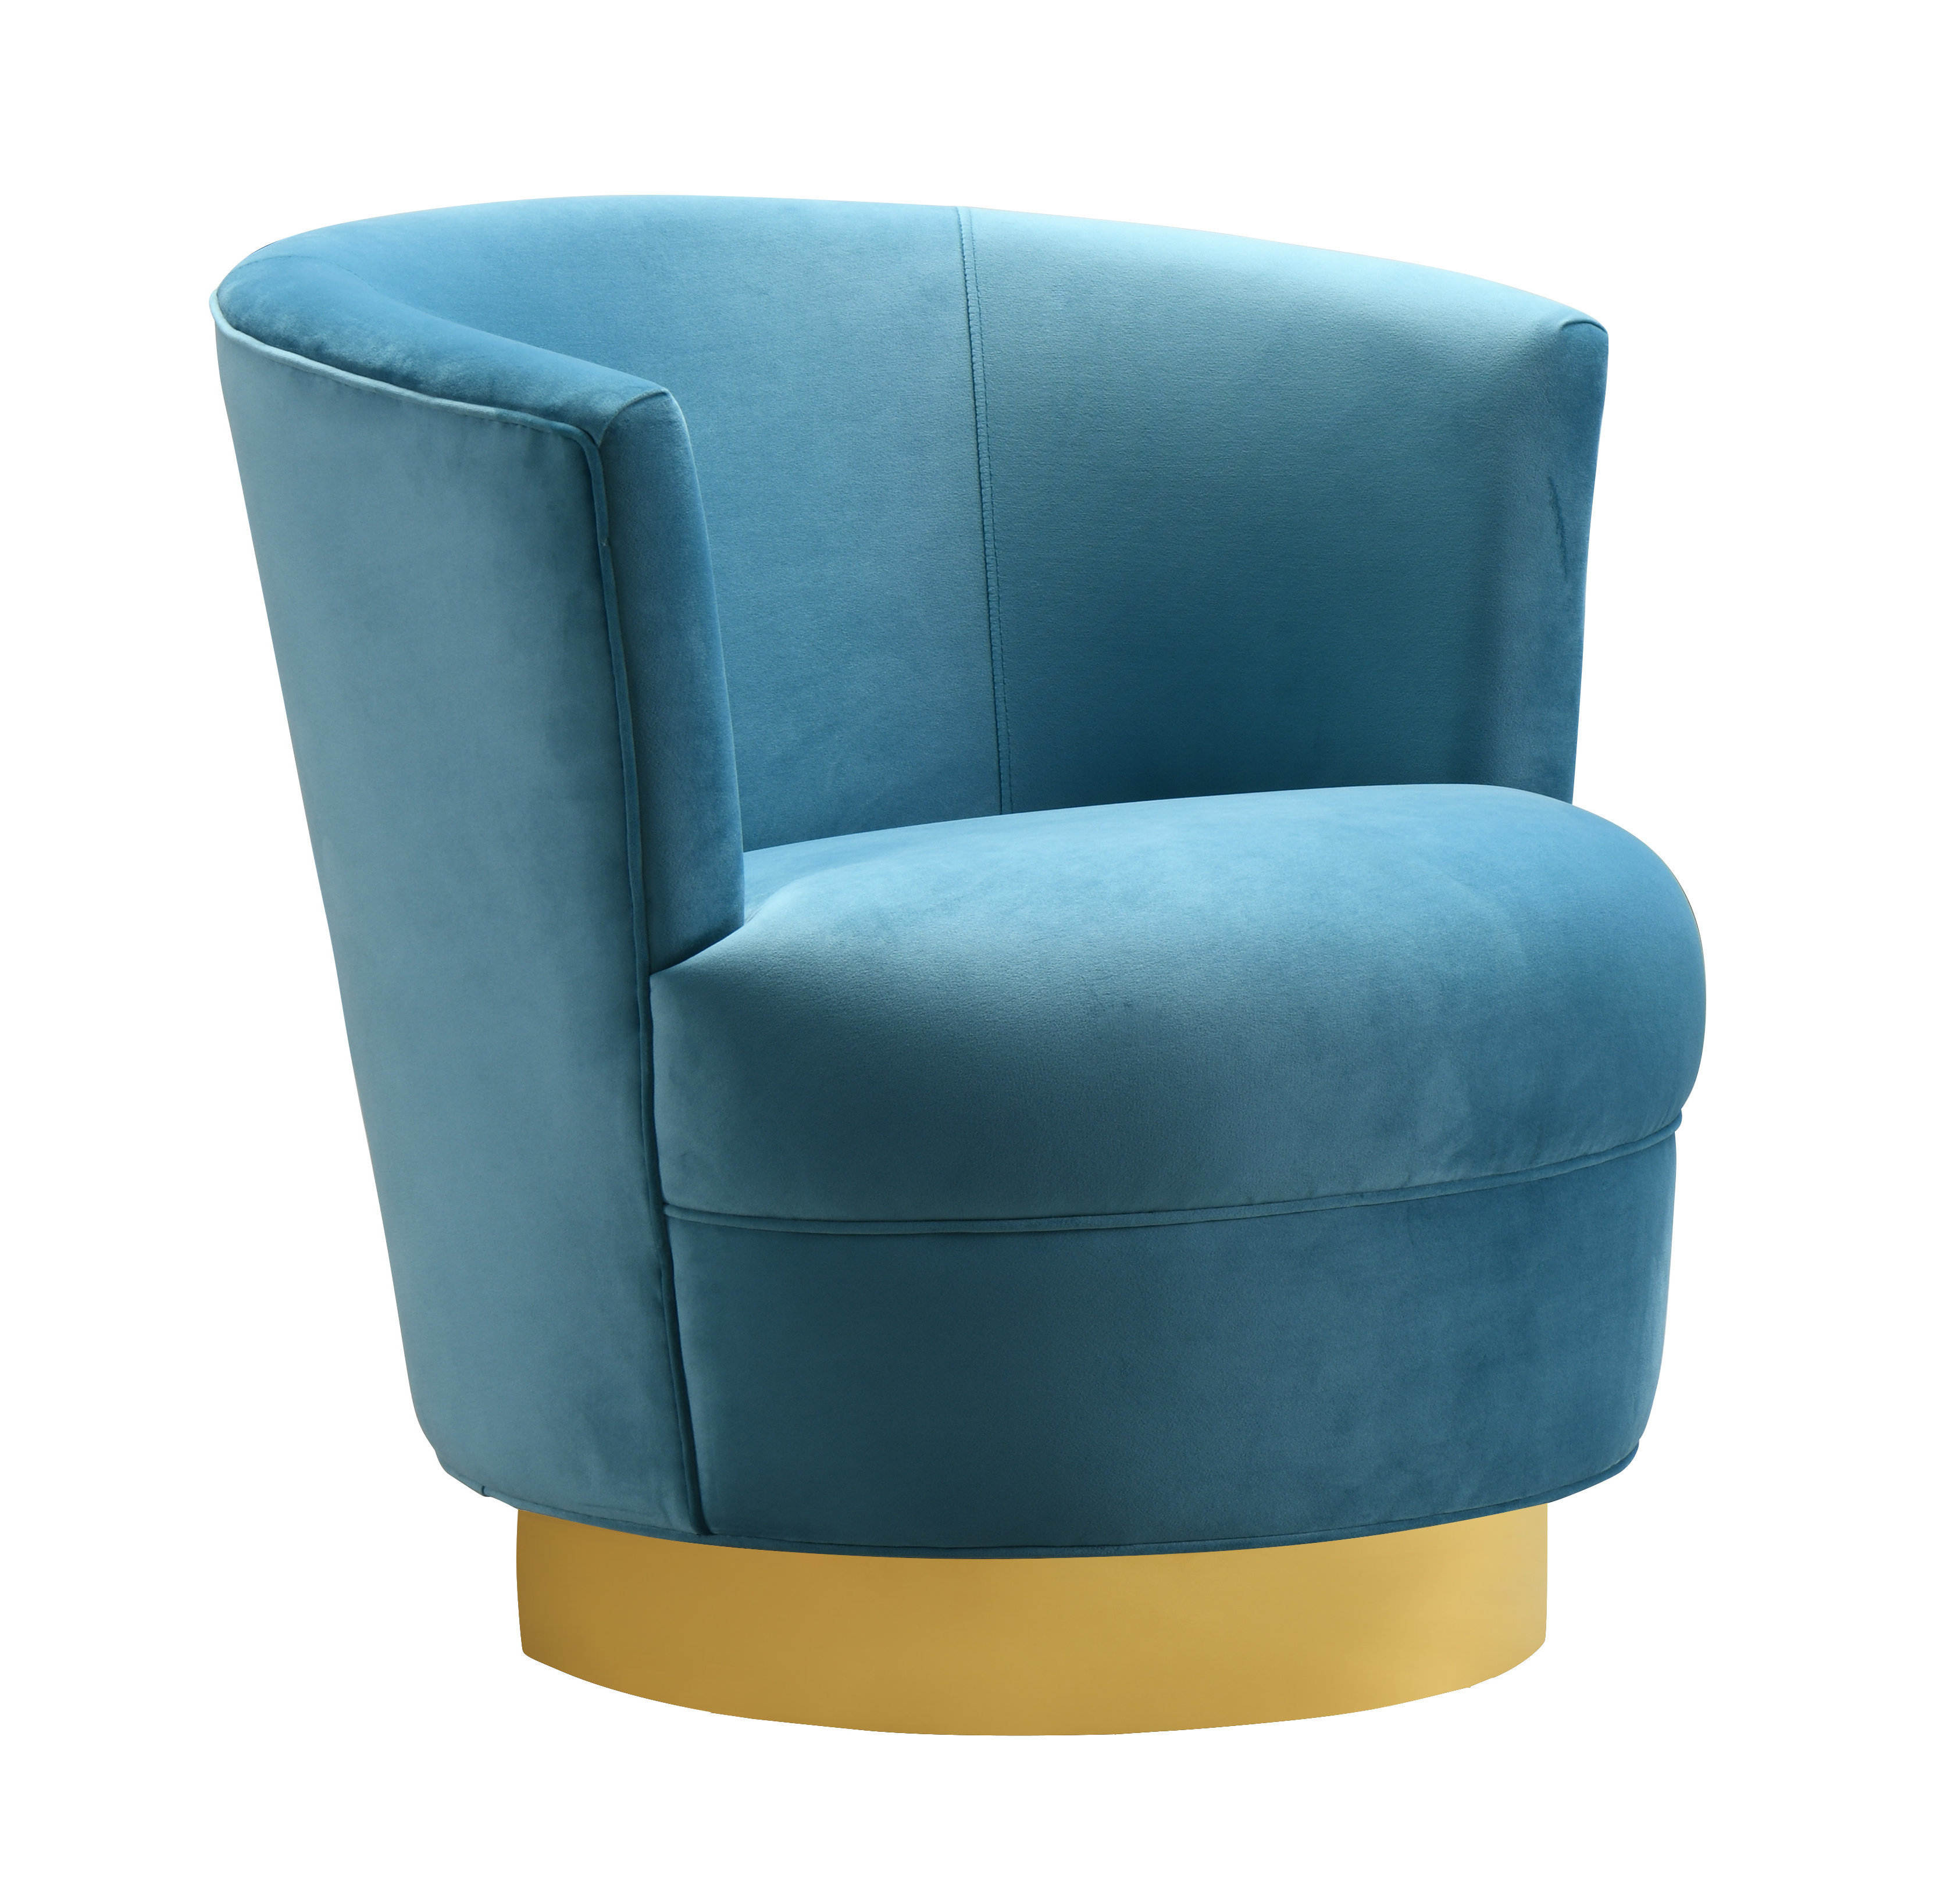 Amazing Tov Furniture Noah Lake Blue Gold Swivel Chair Unemploymentrelief Wooden Chair Designs For Living Room Unemploymentrelieforg